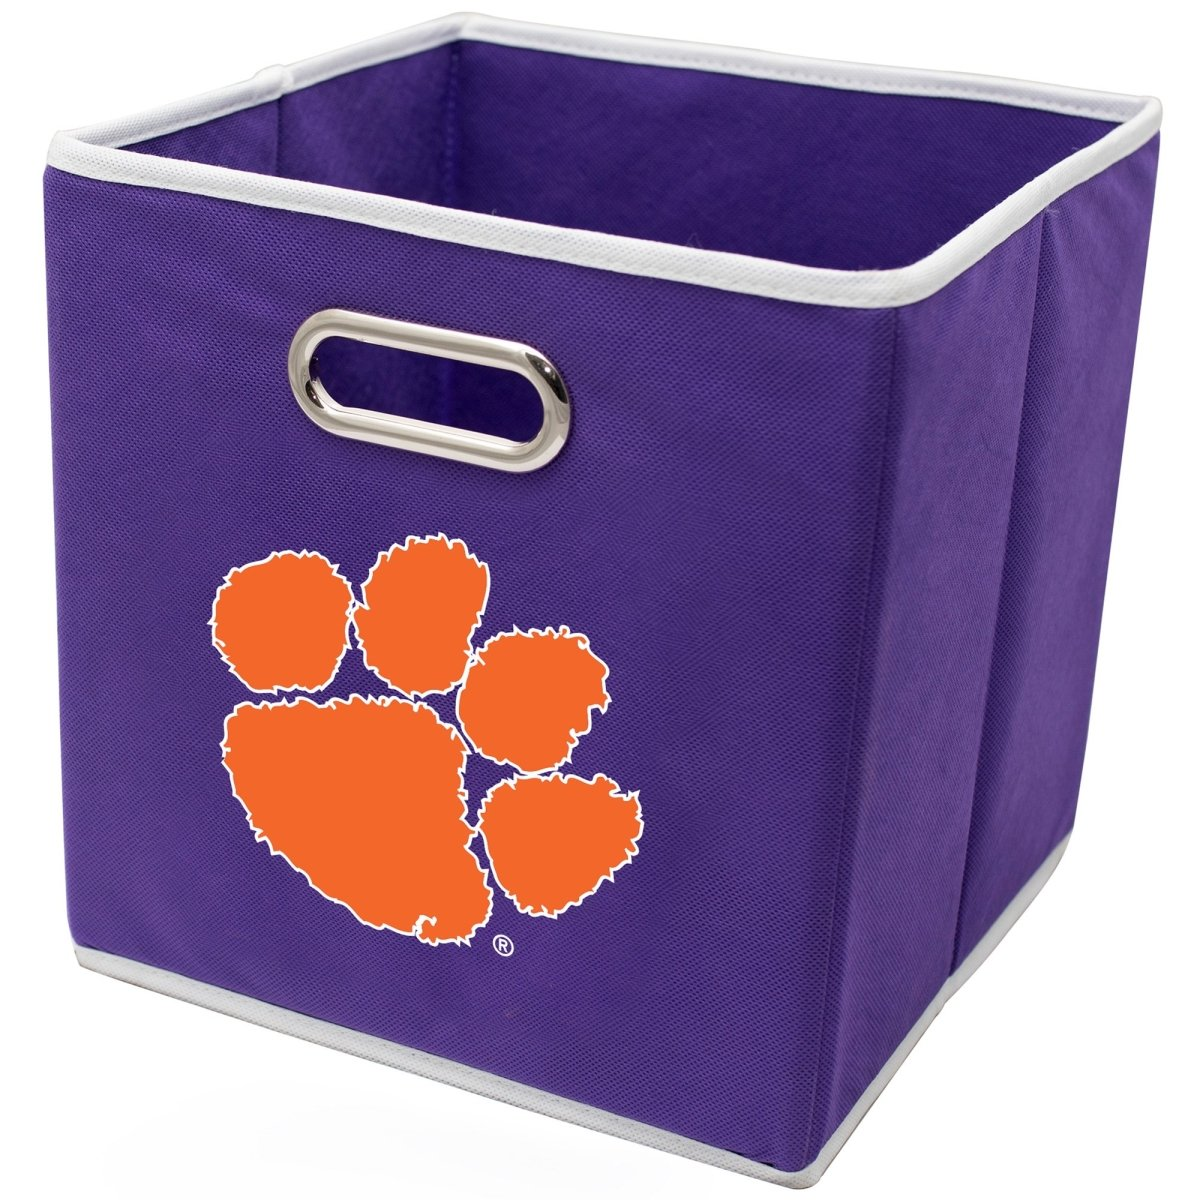 Collapsible Storage Bins - Purple With Orange Paw - Mr. Knickerbocker